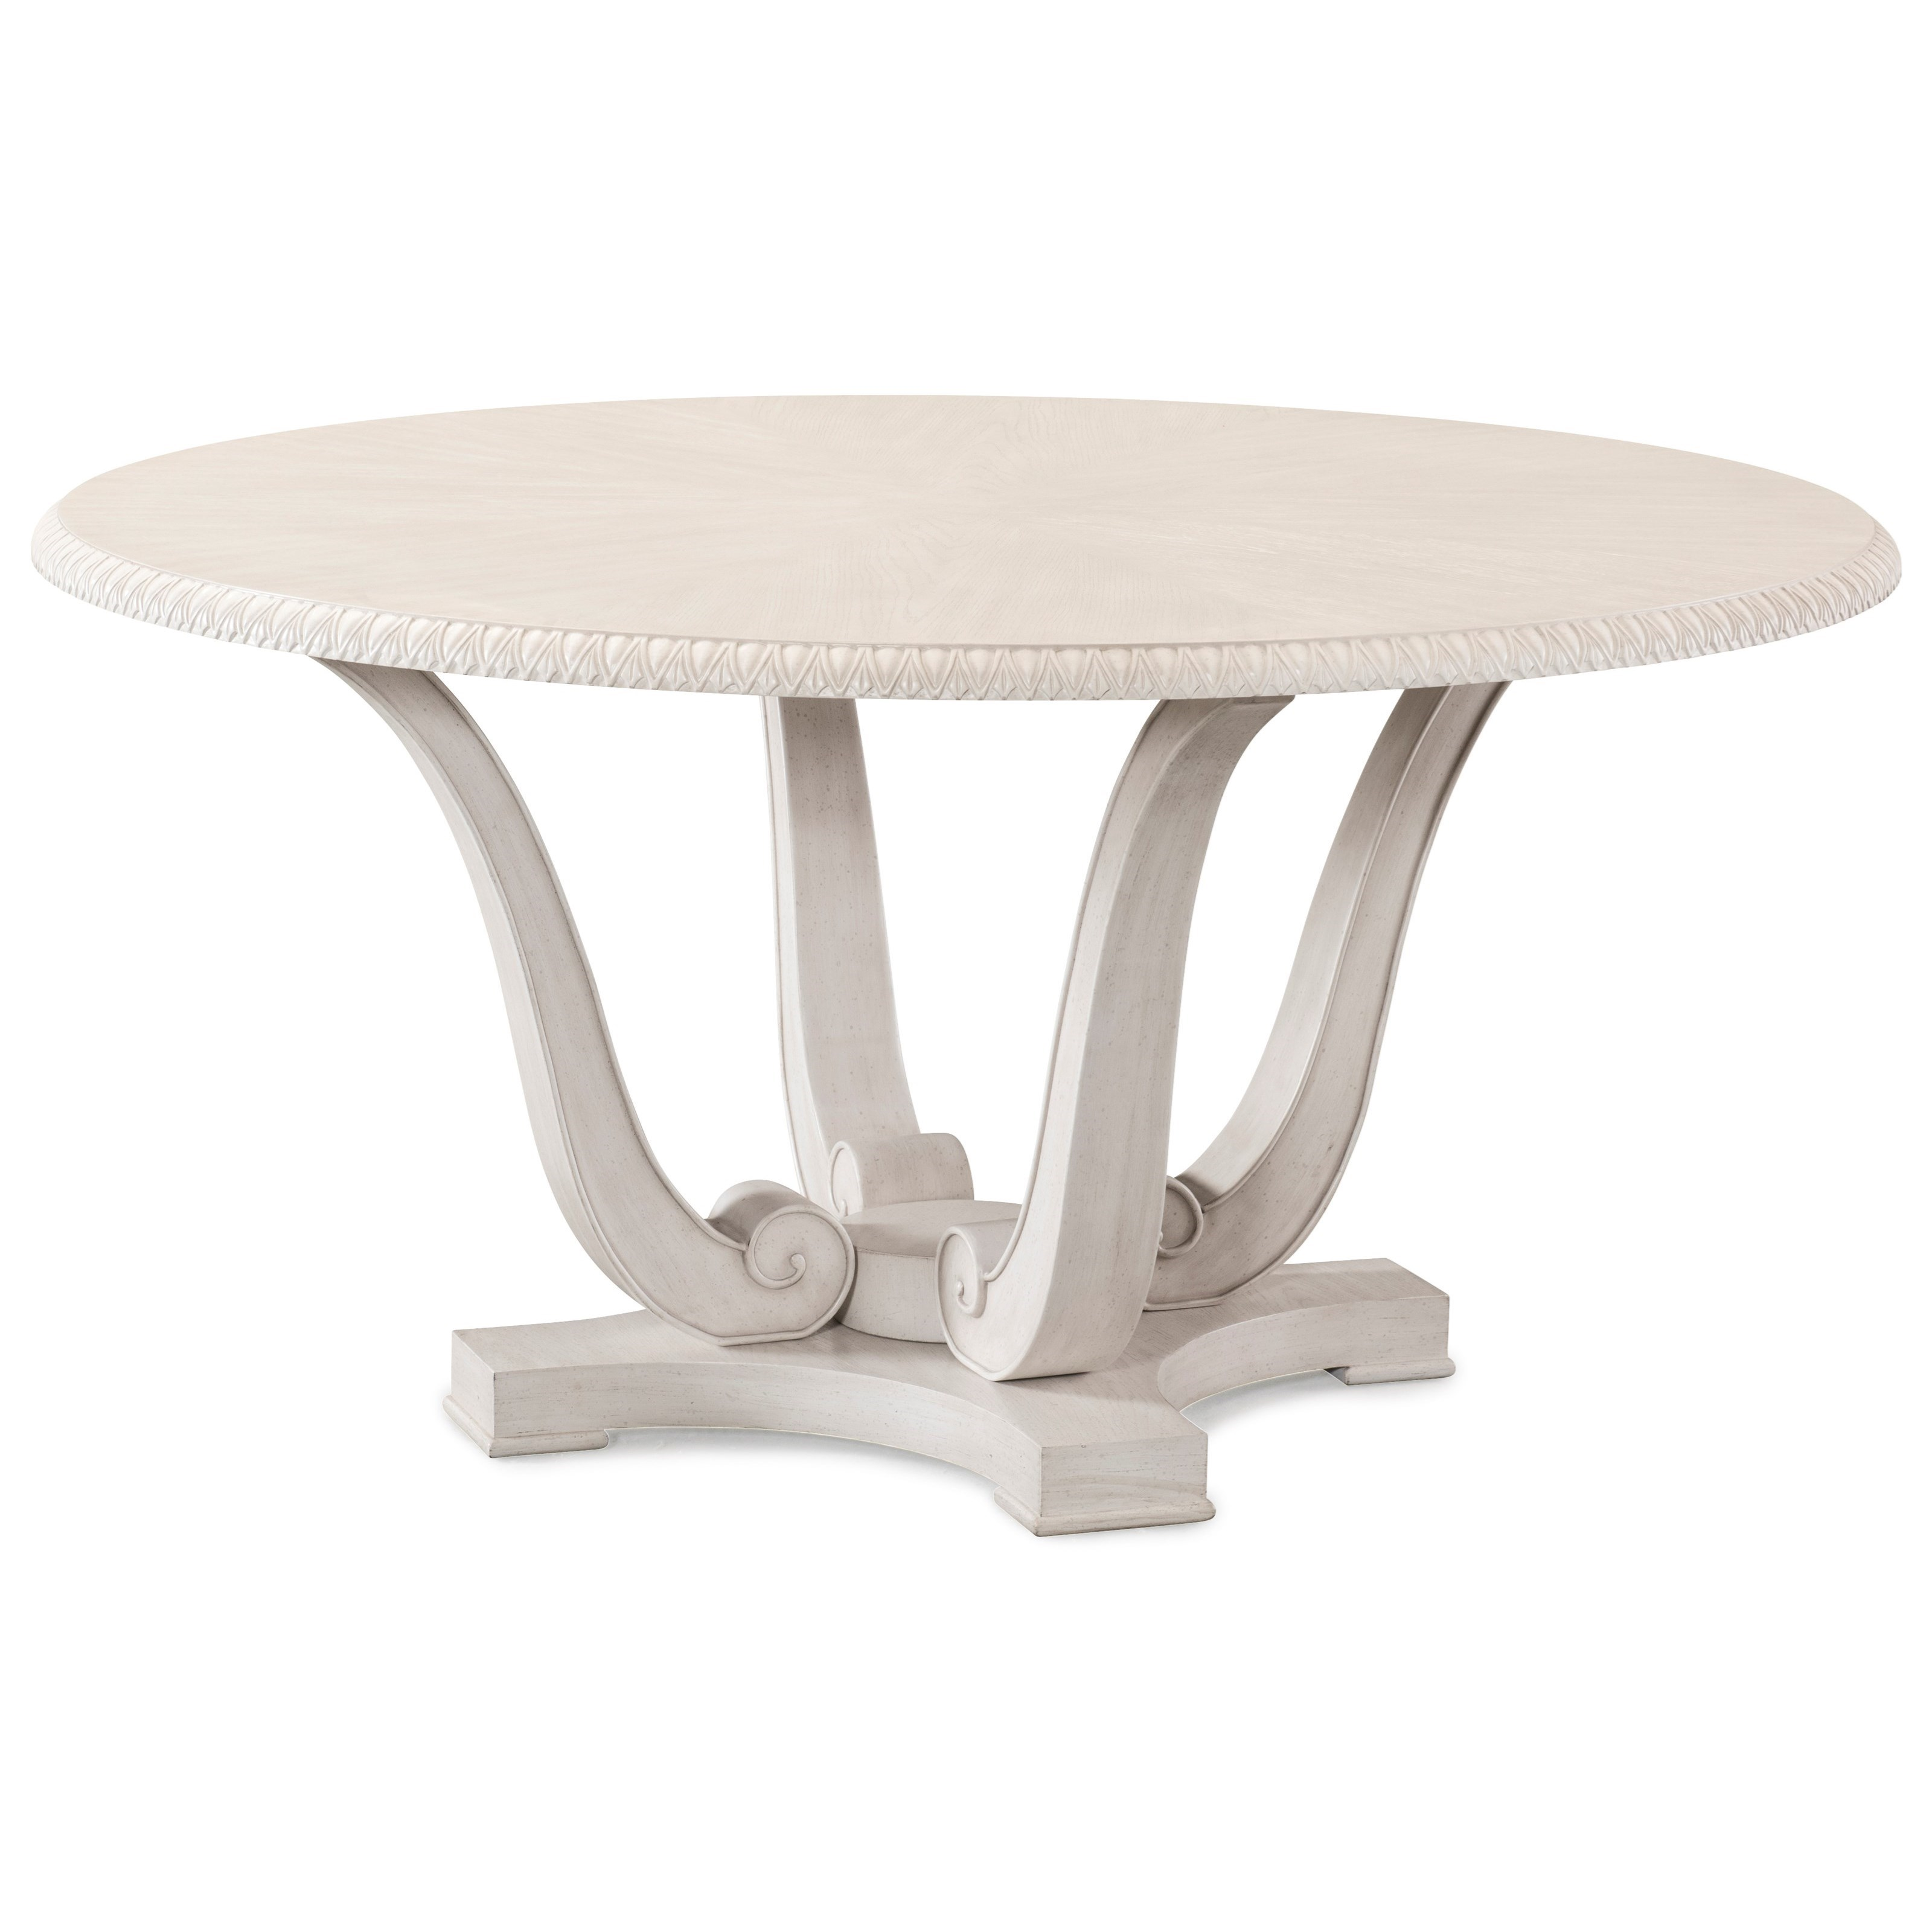 Dogwood Dining Room Table